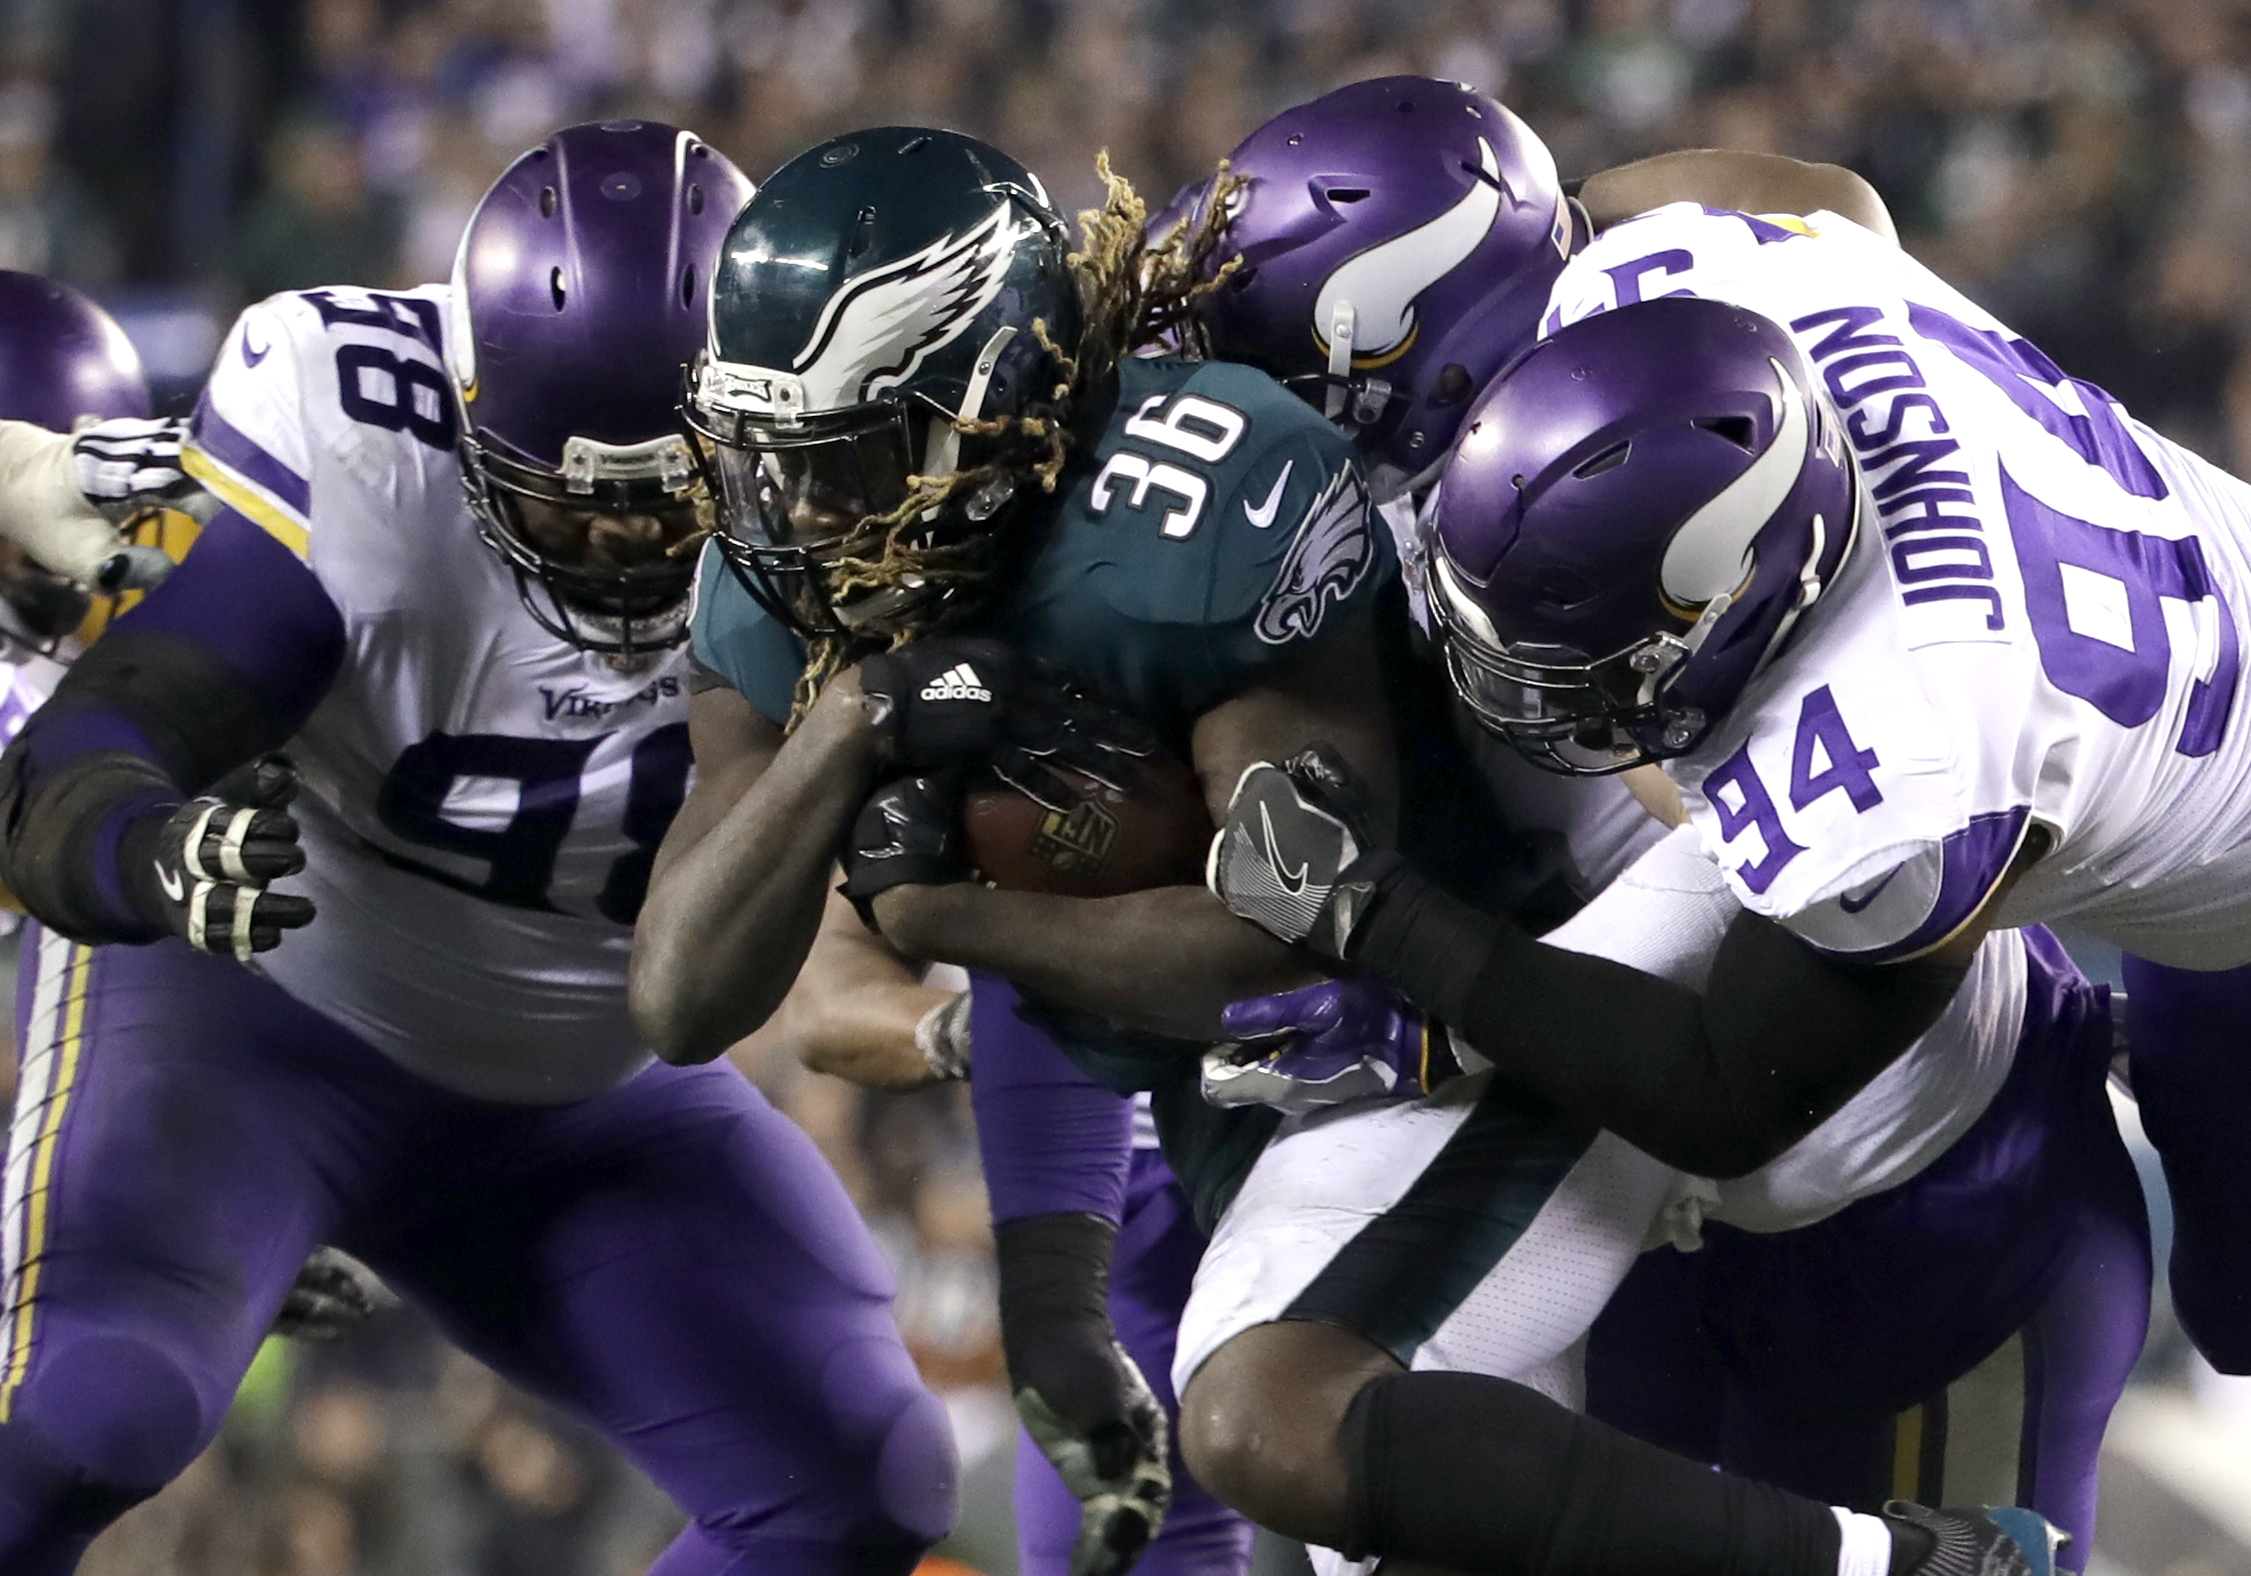 "<div class=""meta image-caption""><div class=""origin-logo origin-image ap""><span>AP</span></div><span class=""caption-text"">Philadelphia Eagles' Jay Ajayi runs during the second half of the NFL football NFC championship game against the Minnesota Vikings Sunday, Jan. 21, 2018, in Philadelphia. (AP Photo/Matt Rourke)</span></div>"